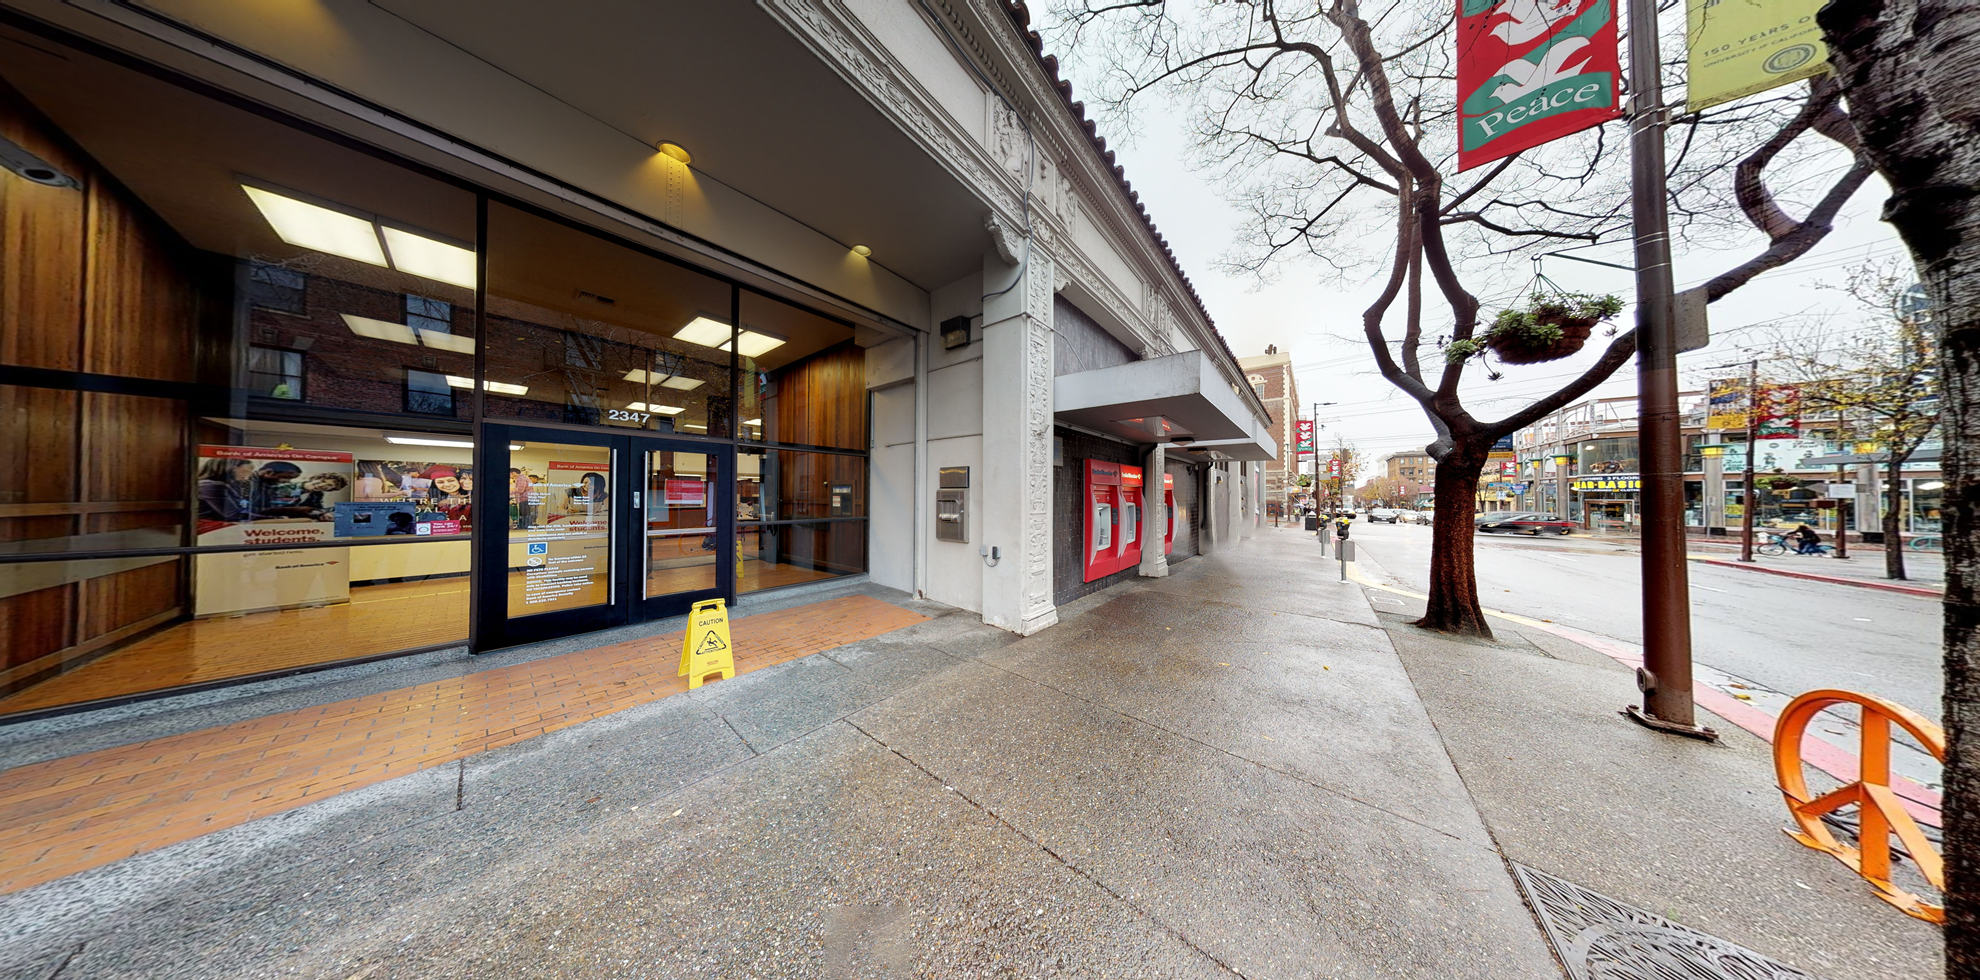 Bank of America financial center with walk-up ATM | 2347 Telegraph Ave, Berkeley, CA 94704